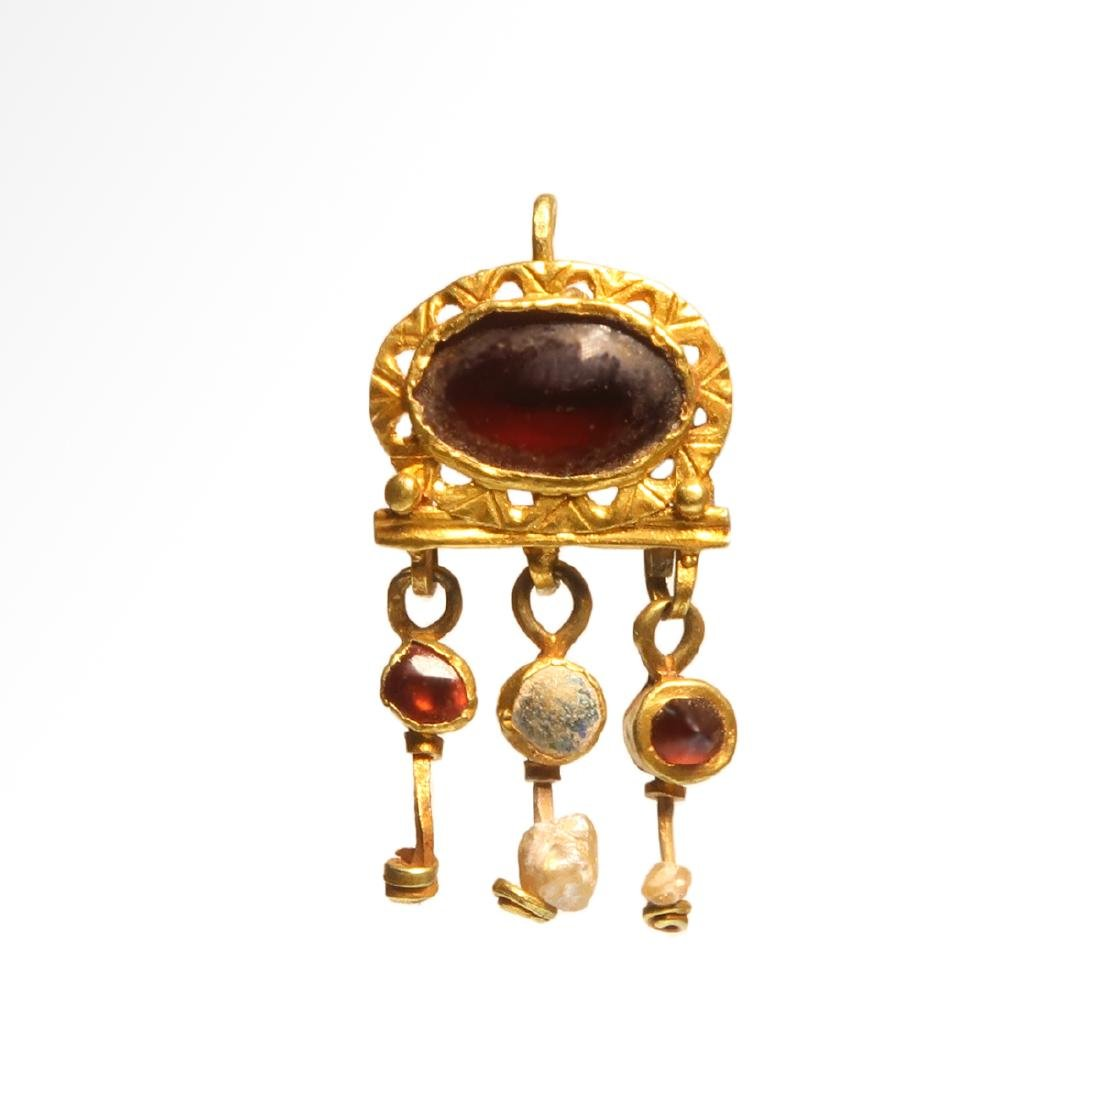 Roman Gold Pendant with Cabochon, c. 2nd - 3rd Century